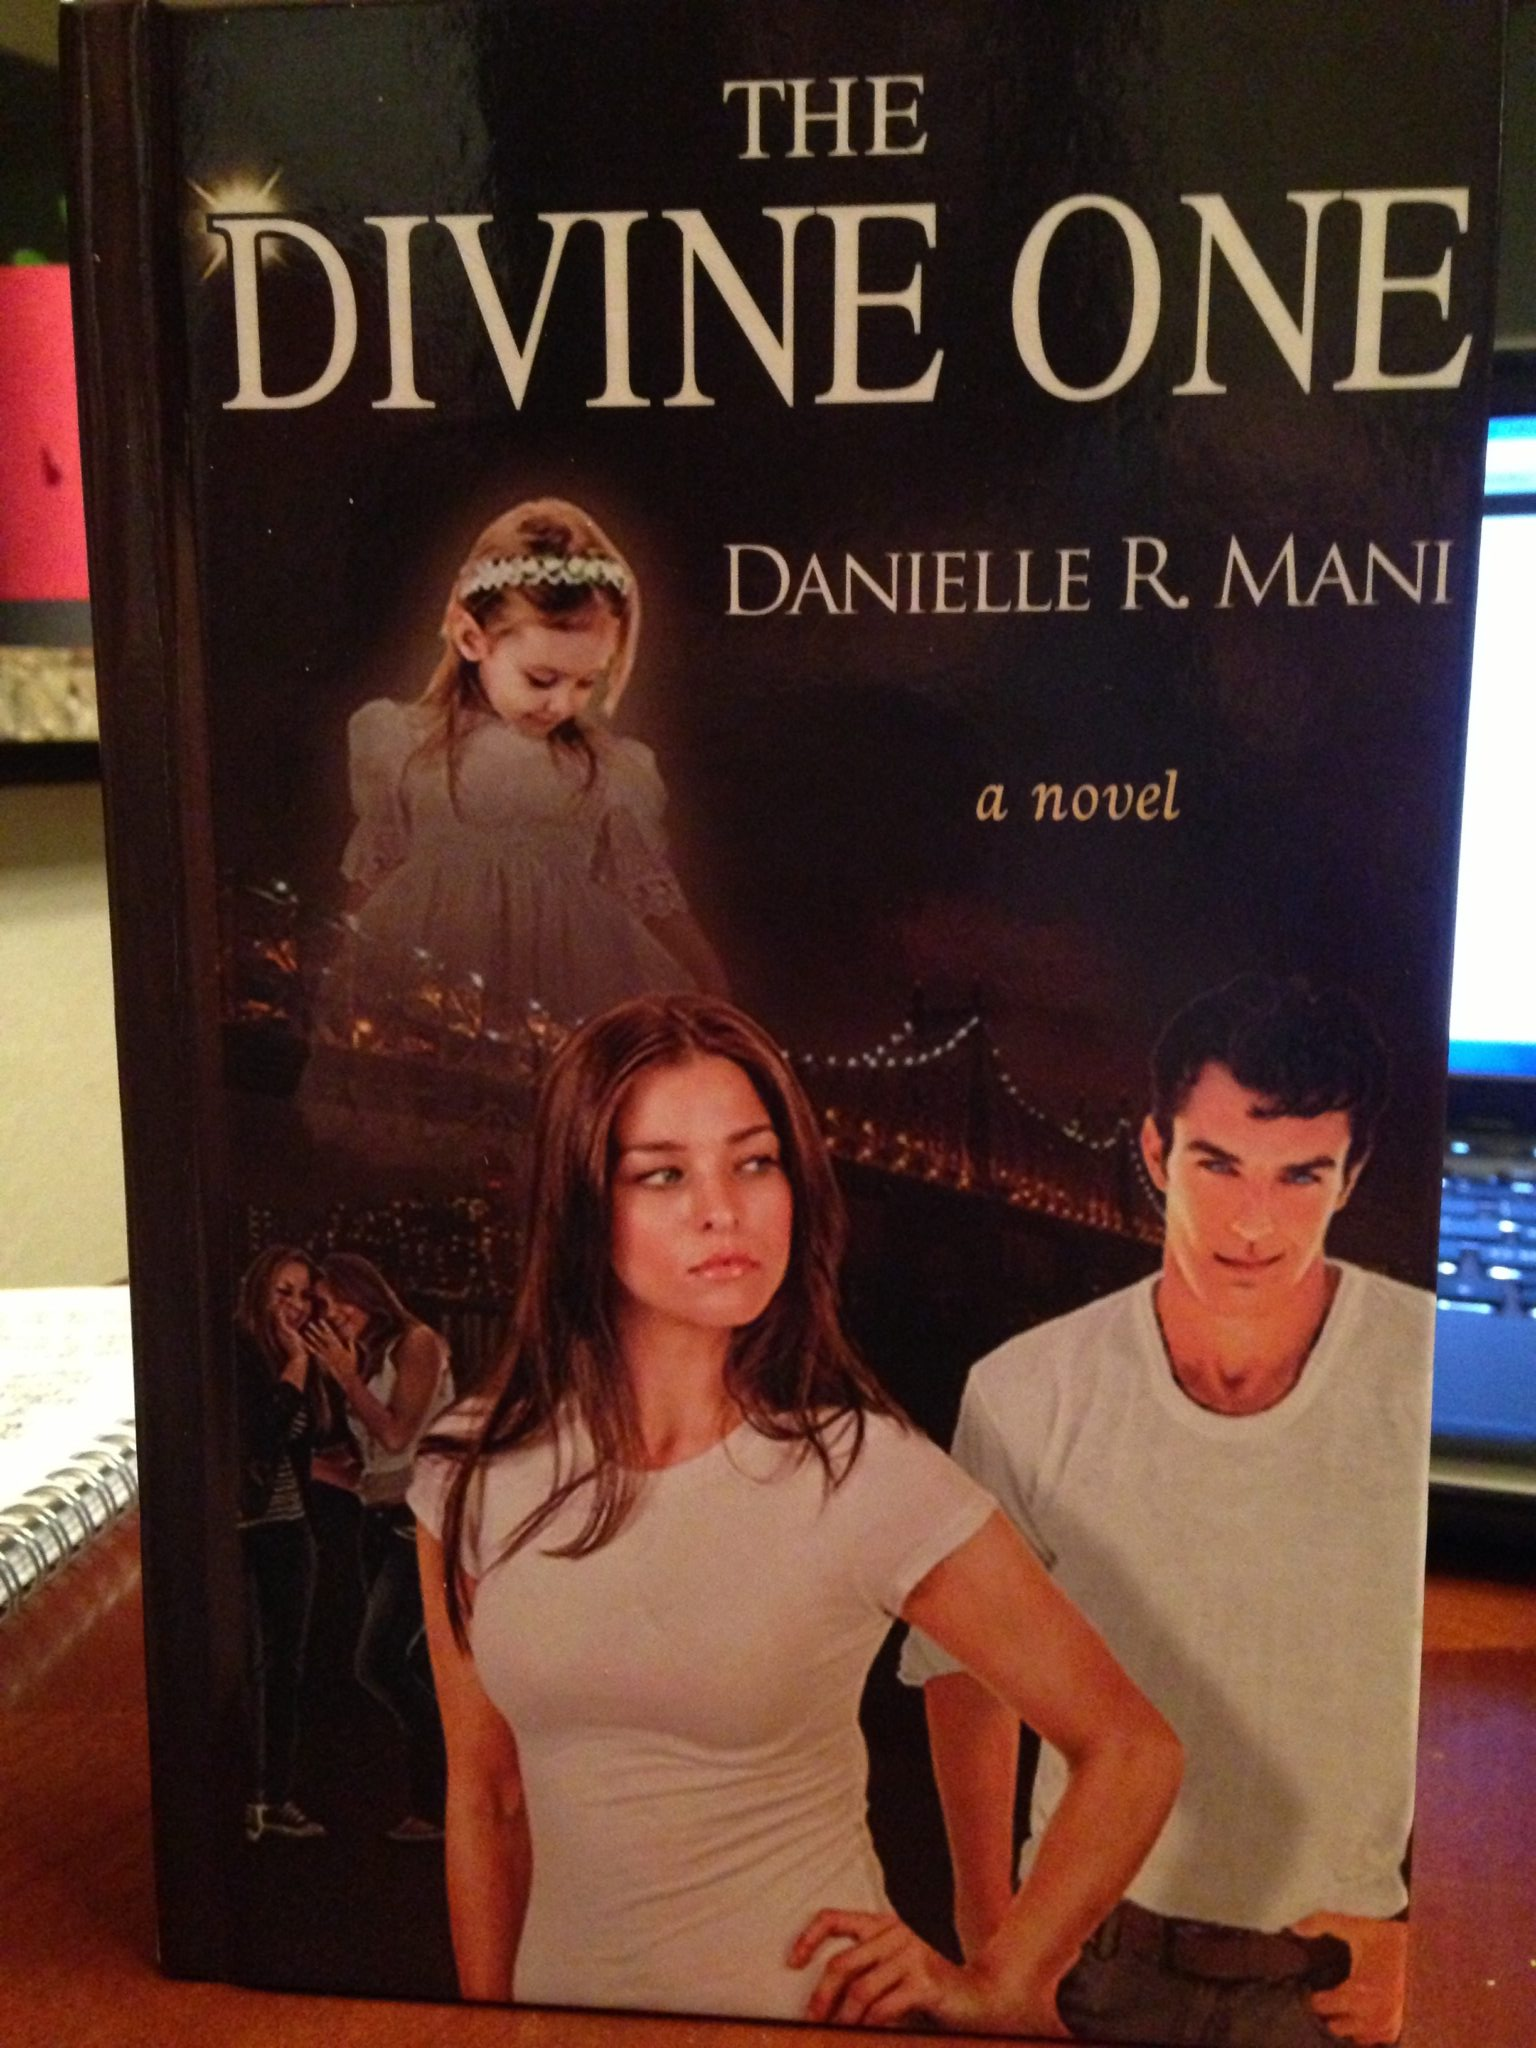 A Young Adult Novel Review, The Divine One by Danielle R. Mani